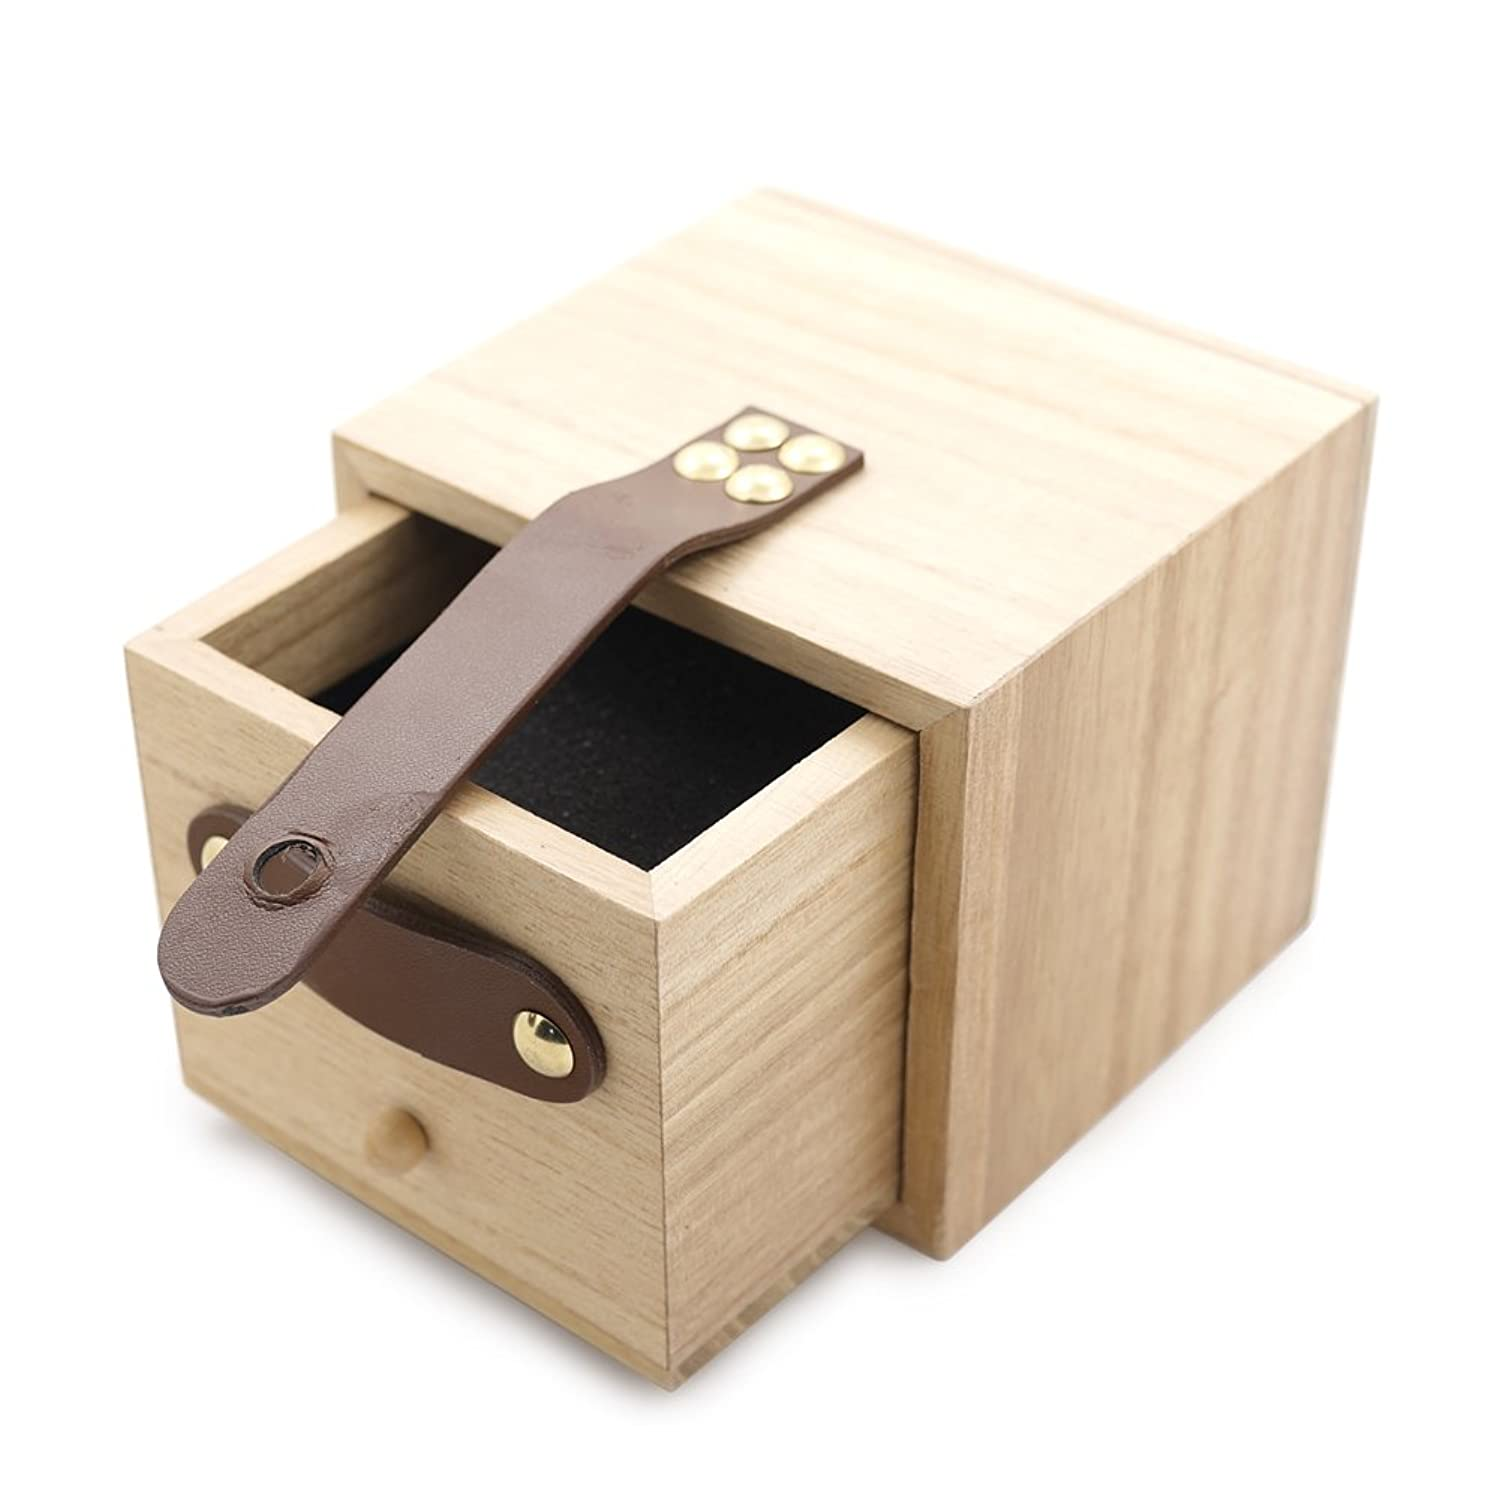 bobo鳥木製竹用時計ボックスとしてギフトボックスWatches Wooden Drawer Boxes B0769DXX6DWooden Drawer Boxes